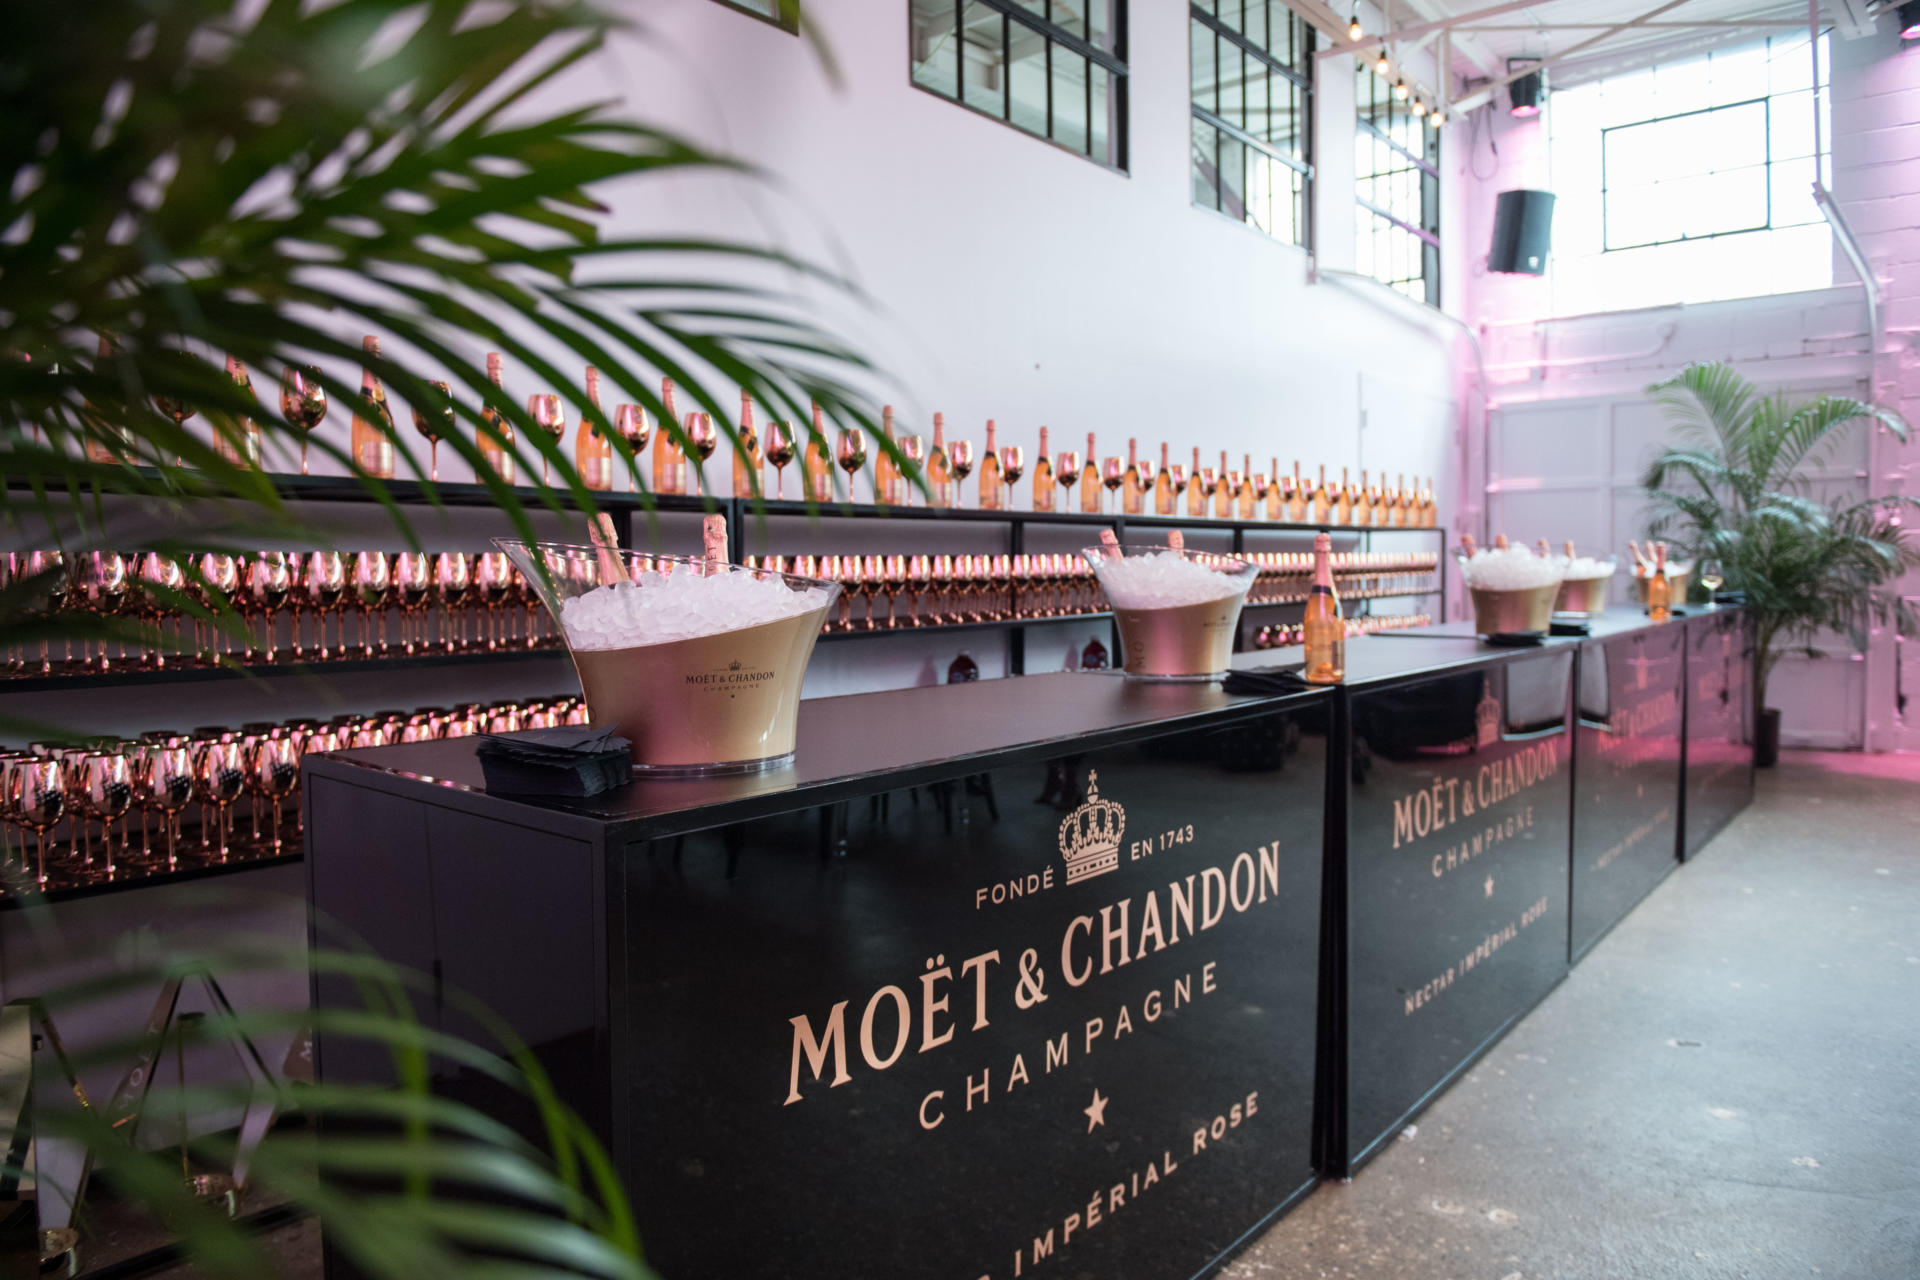 My MoëtMoment: The Launch of Nectar Impérial Rosé | Dominique of Style Domination